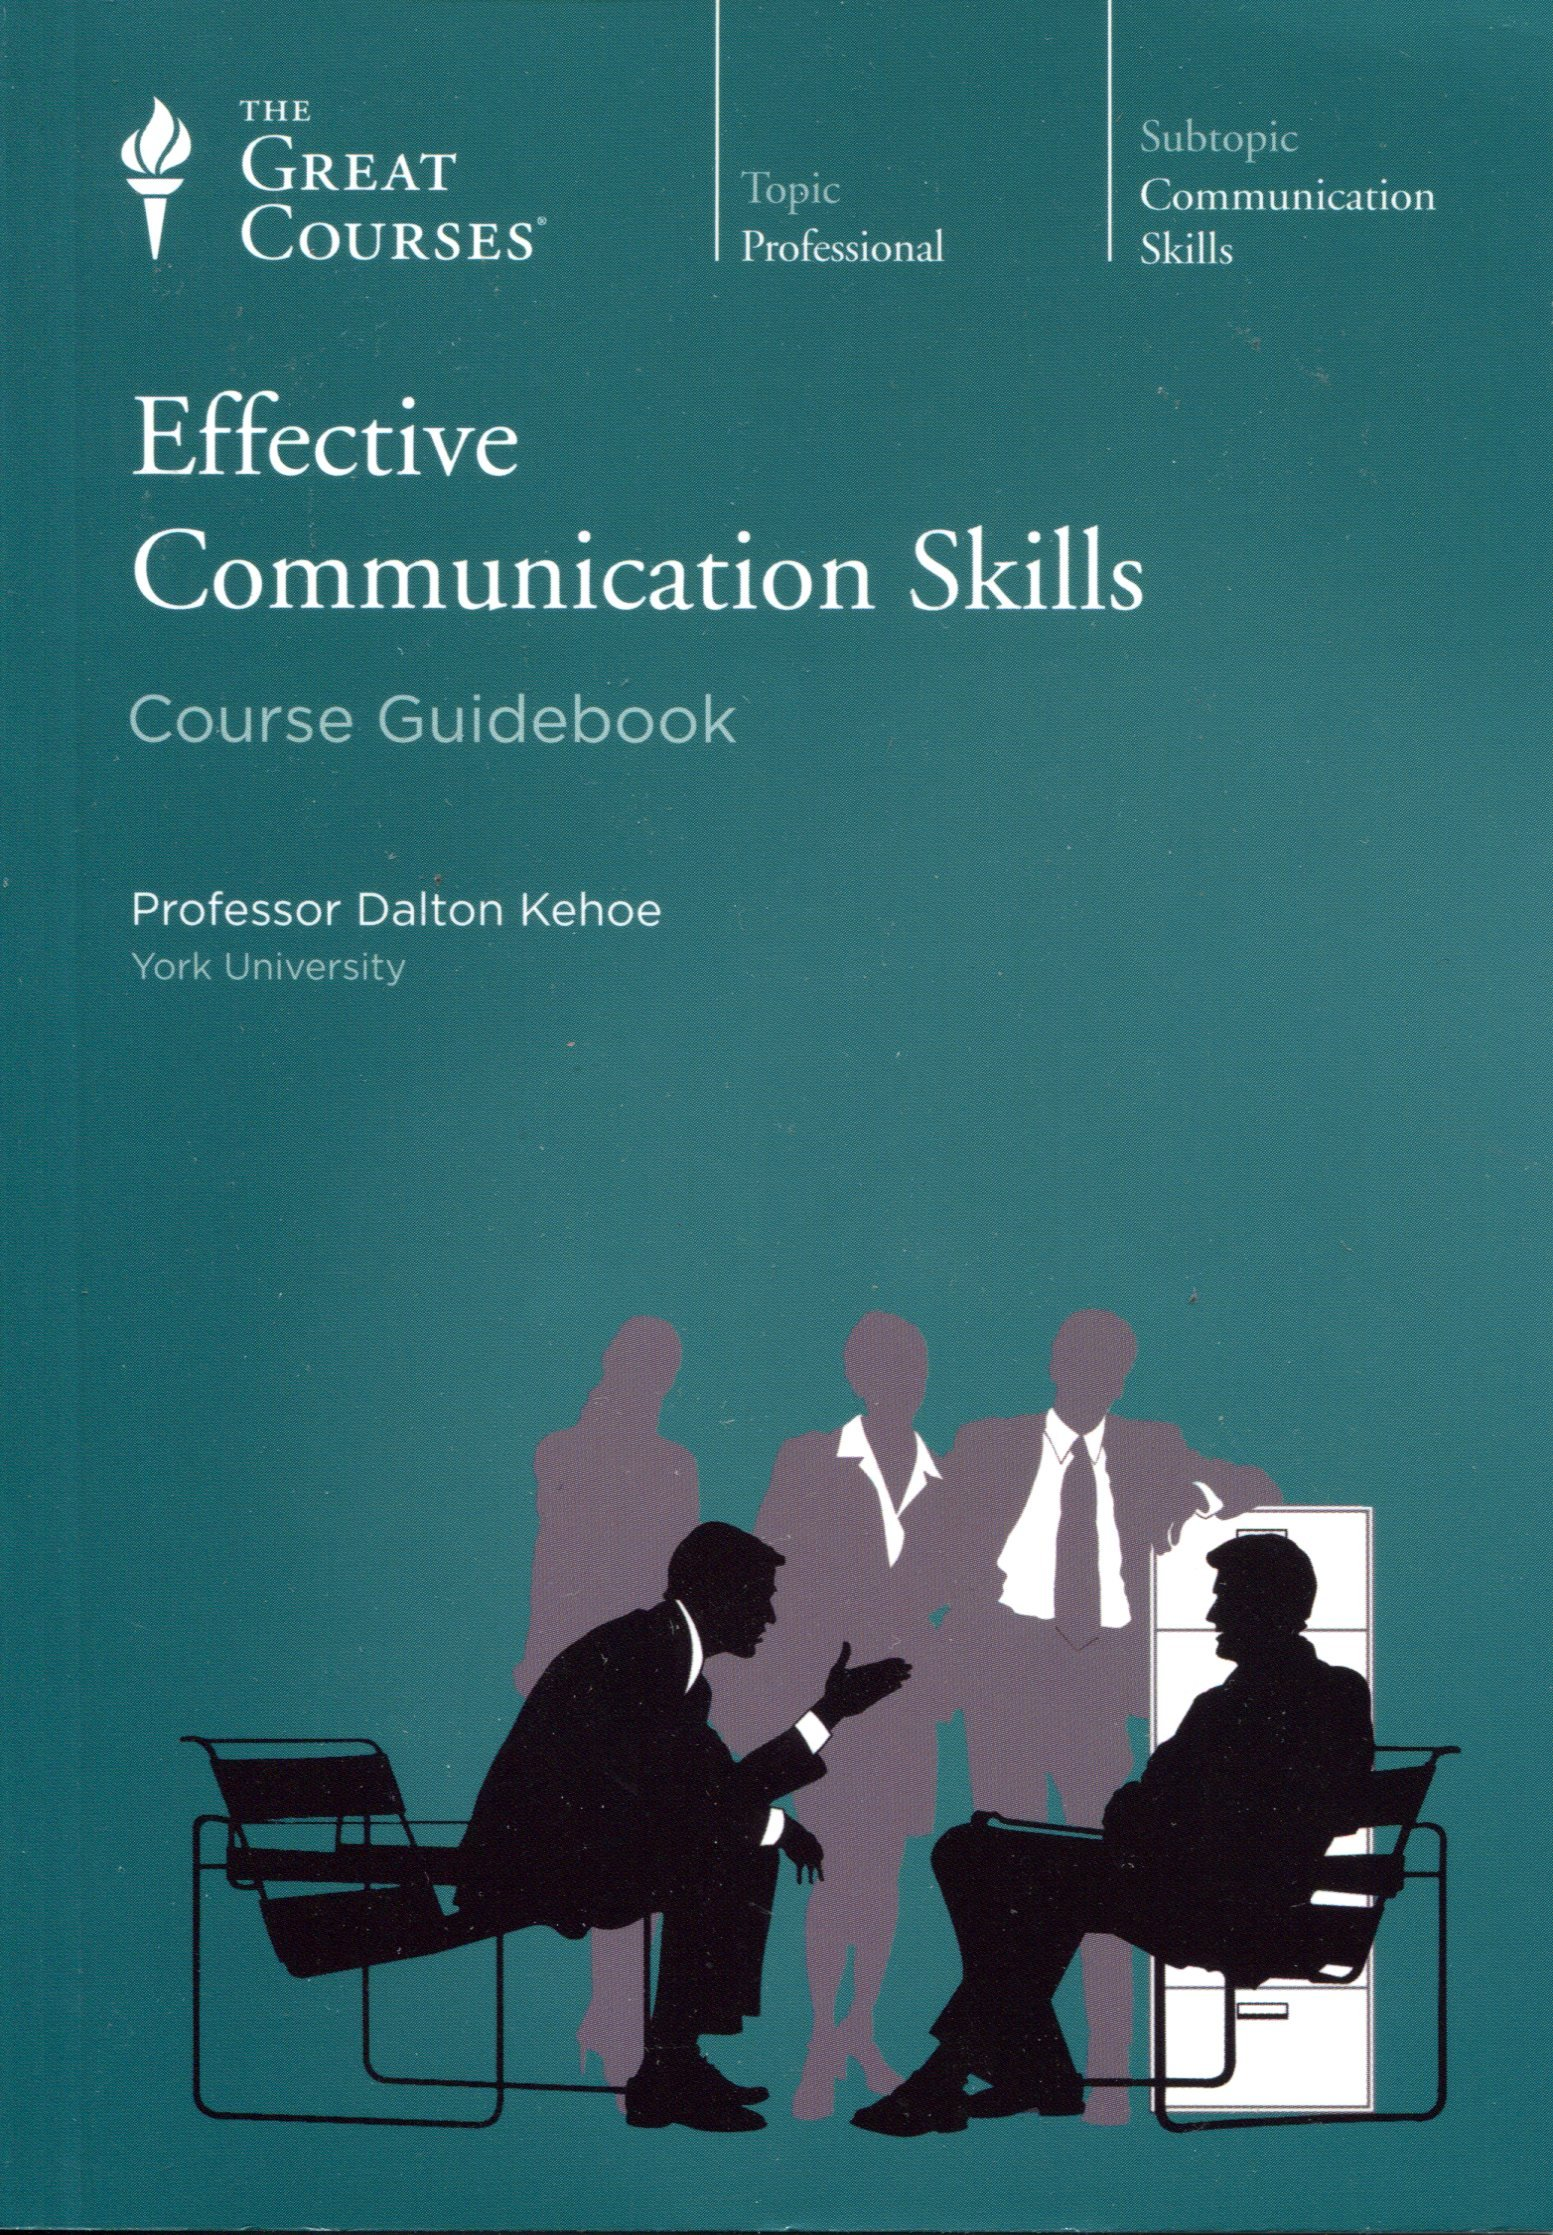 Effective Communication Skills (Course Guidebook) (Great Course #9331), Professor Dalton Kehoe